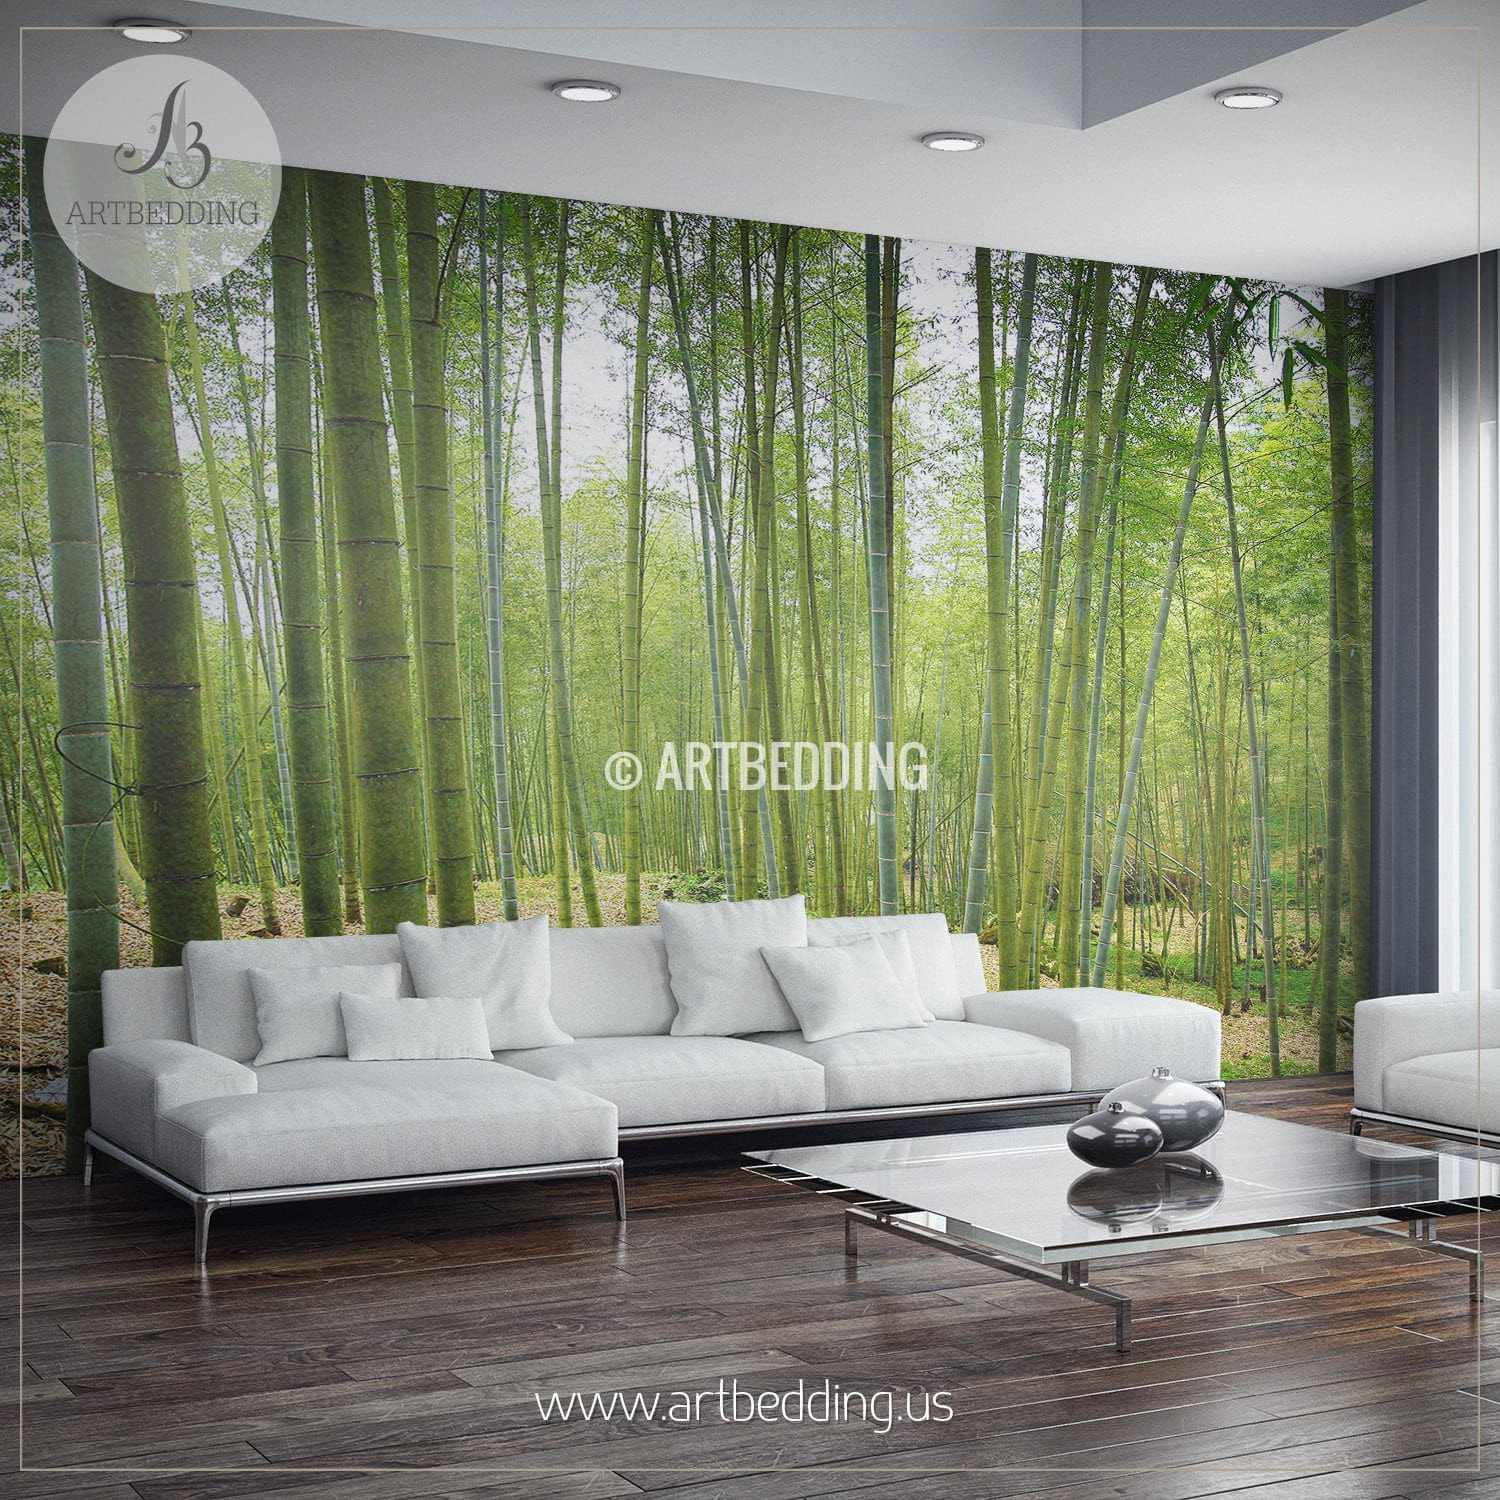 Bamboo Forest Self Adhesive Peel Stick Nature wall mural ARTBEDDING